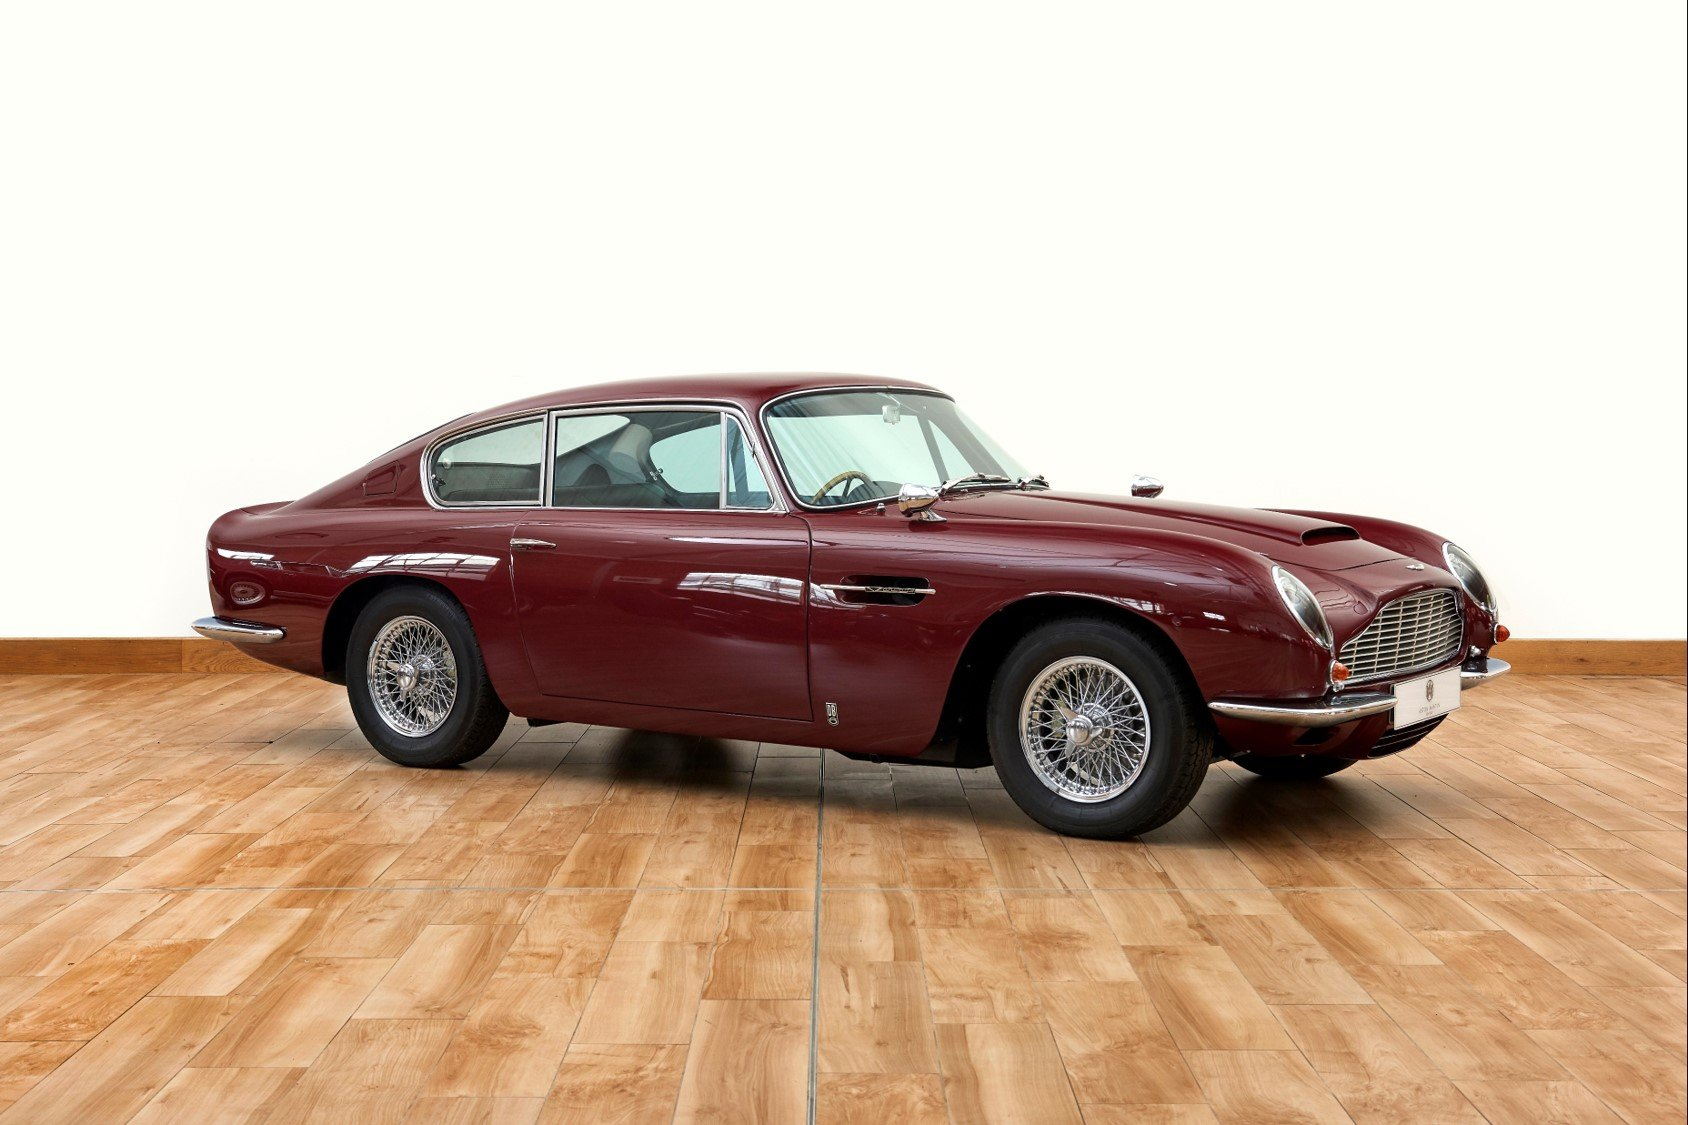 1966 Aston Martin DB6 Vantage Saloon For Sale (picture 1 of 6)